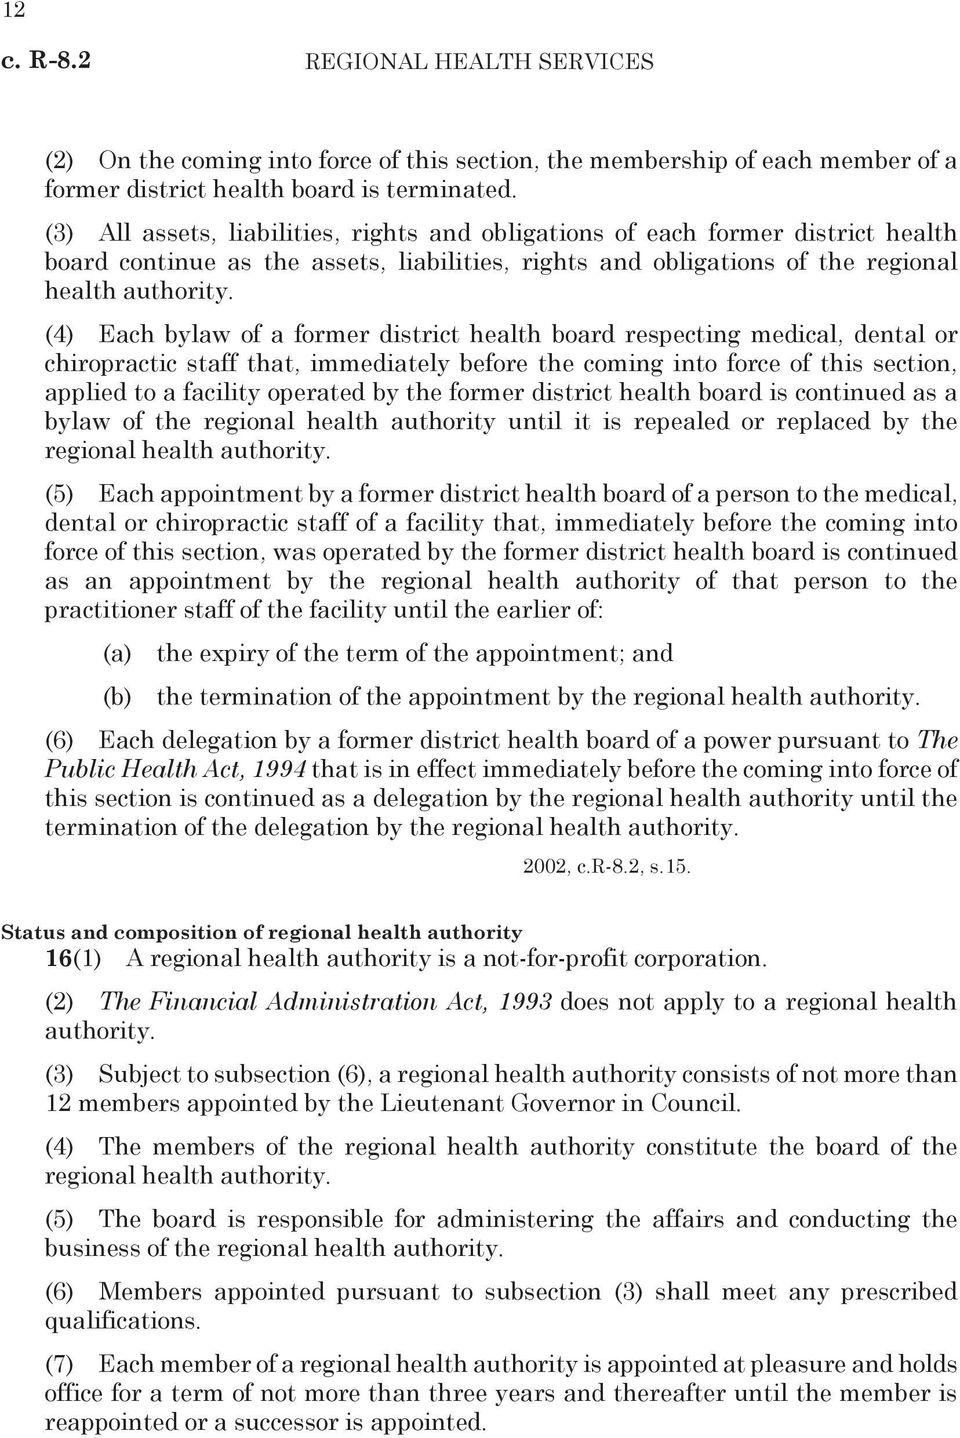 (4) Each bylaw of a former district health board respecting medical, dental or chiropractic staff that, immediately before the coming into force of this section, applied to a facility operated by the